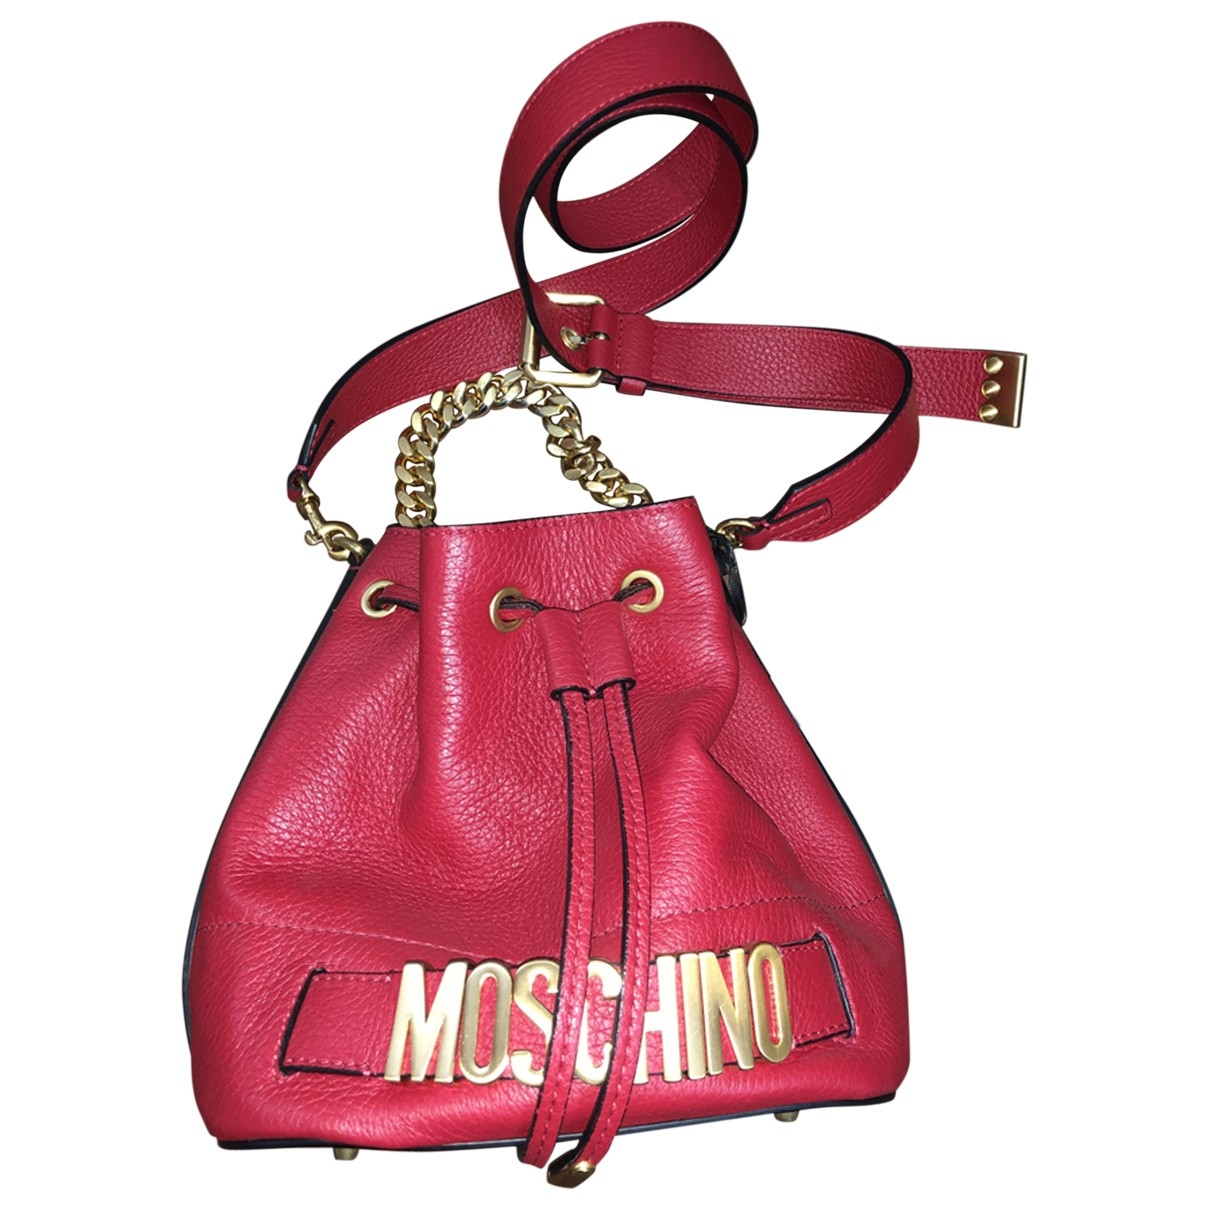 Moschino \N Red Leather handbag for Women \N